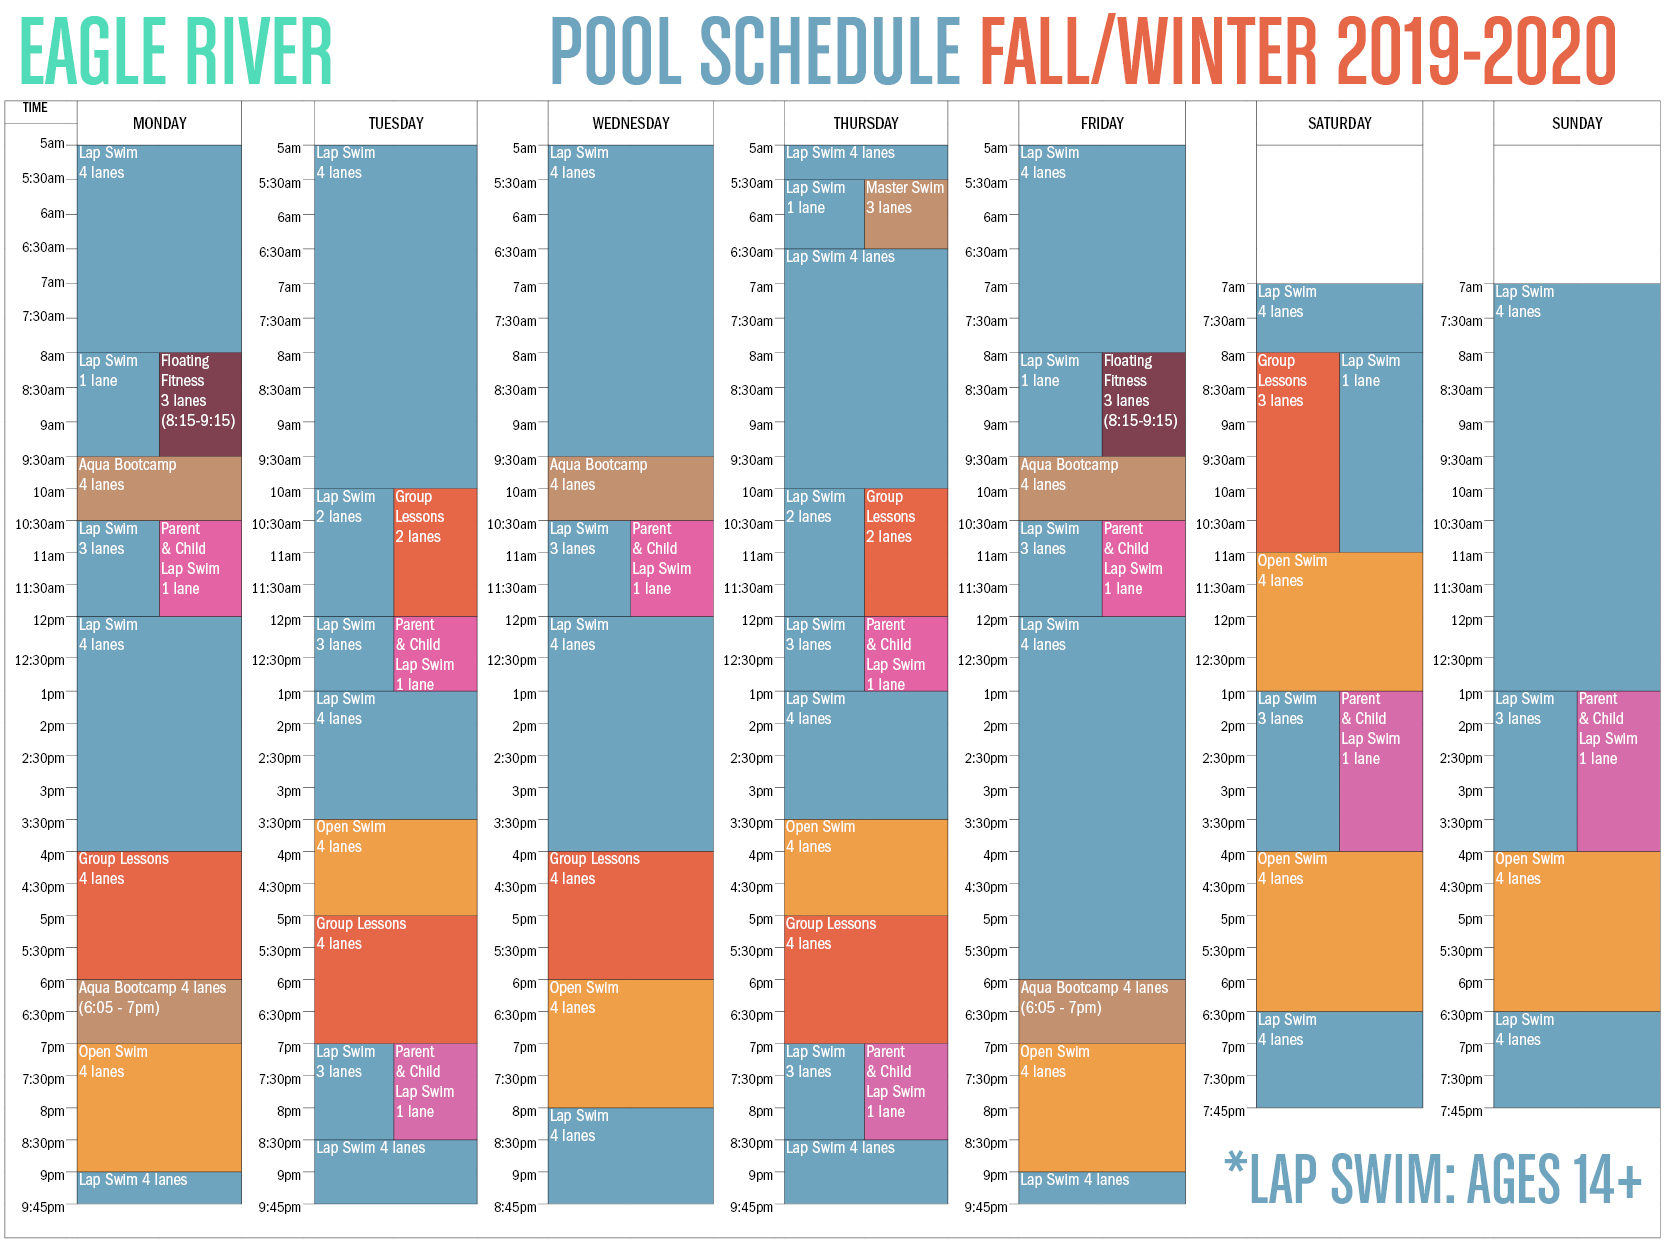 Fall-Winter Eagle River Pool Schedule